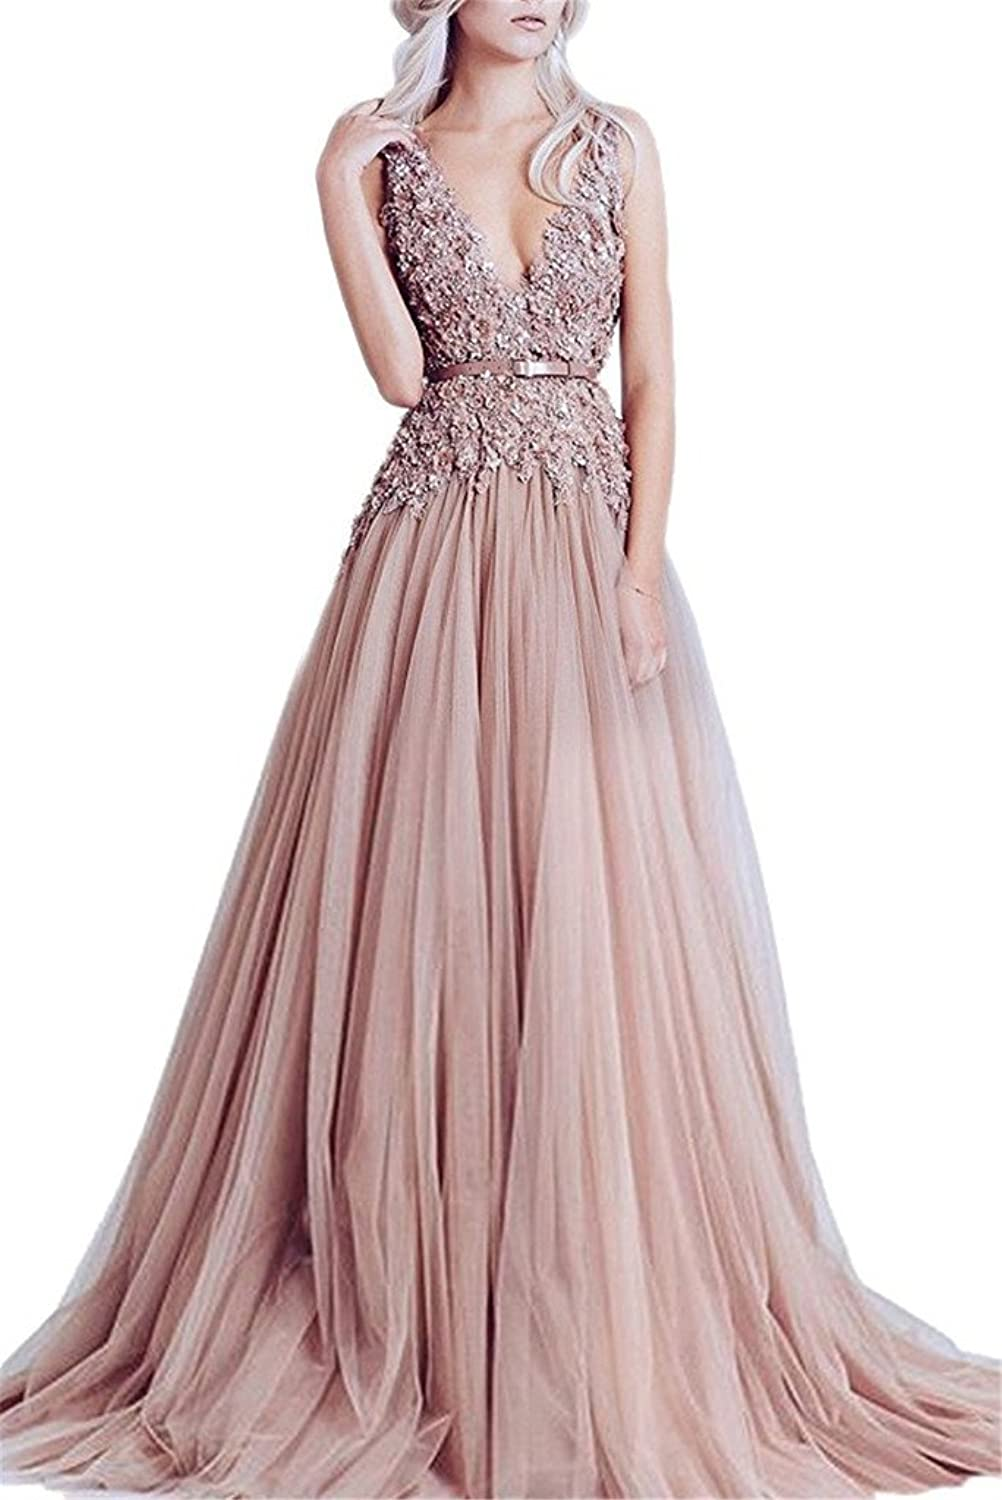 XSWPL Sexy Deep v Neck Appliques Tulle Prom Dresses Long Backless Wedding Party Dress with Belt